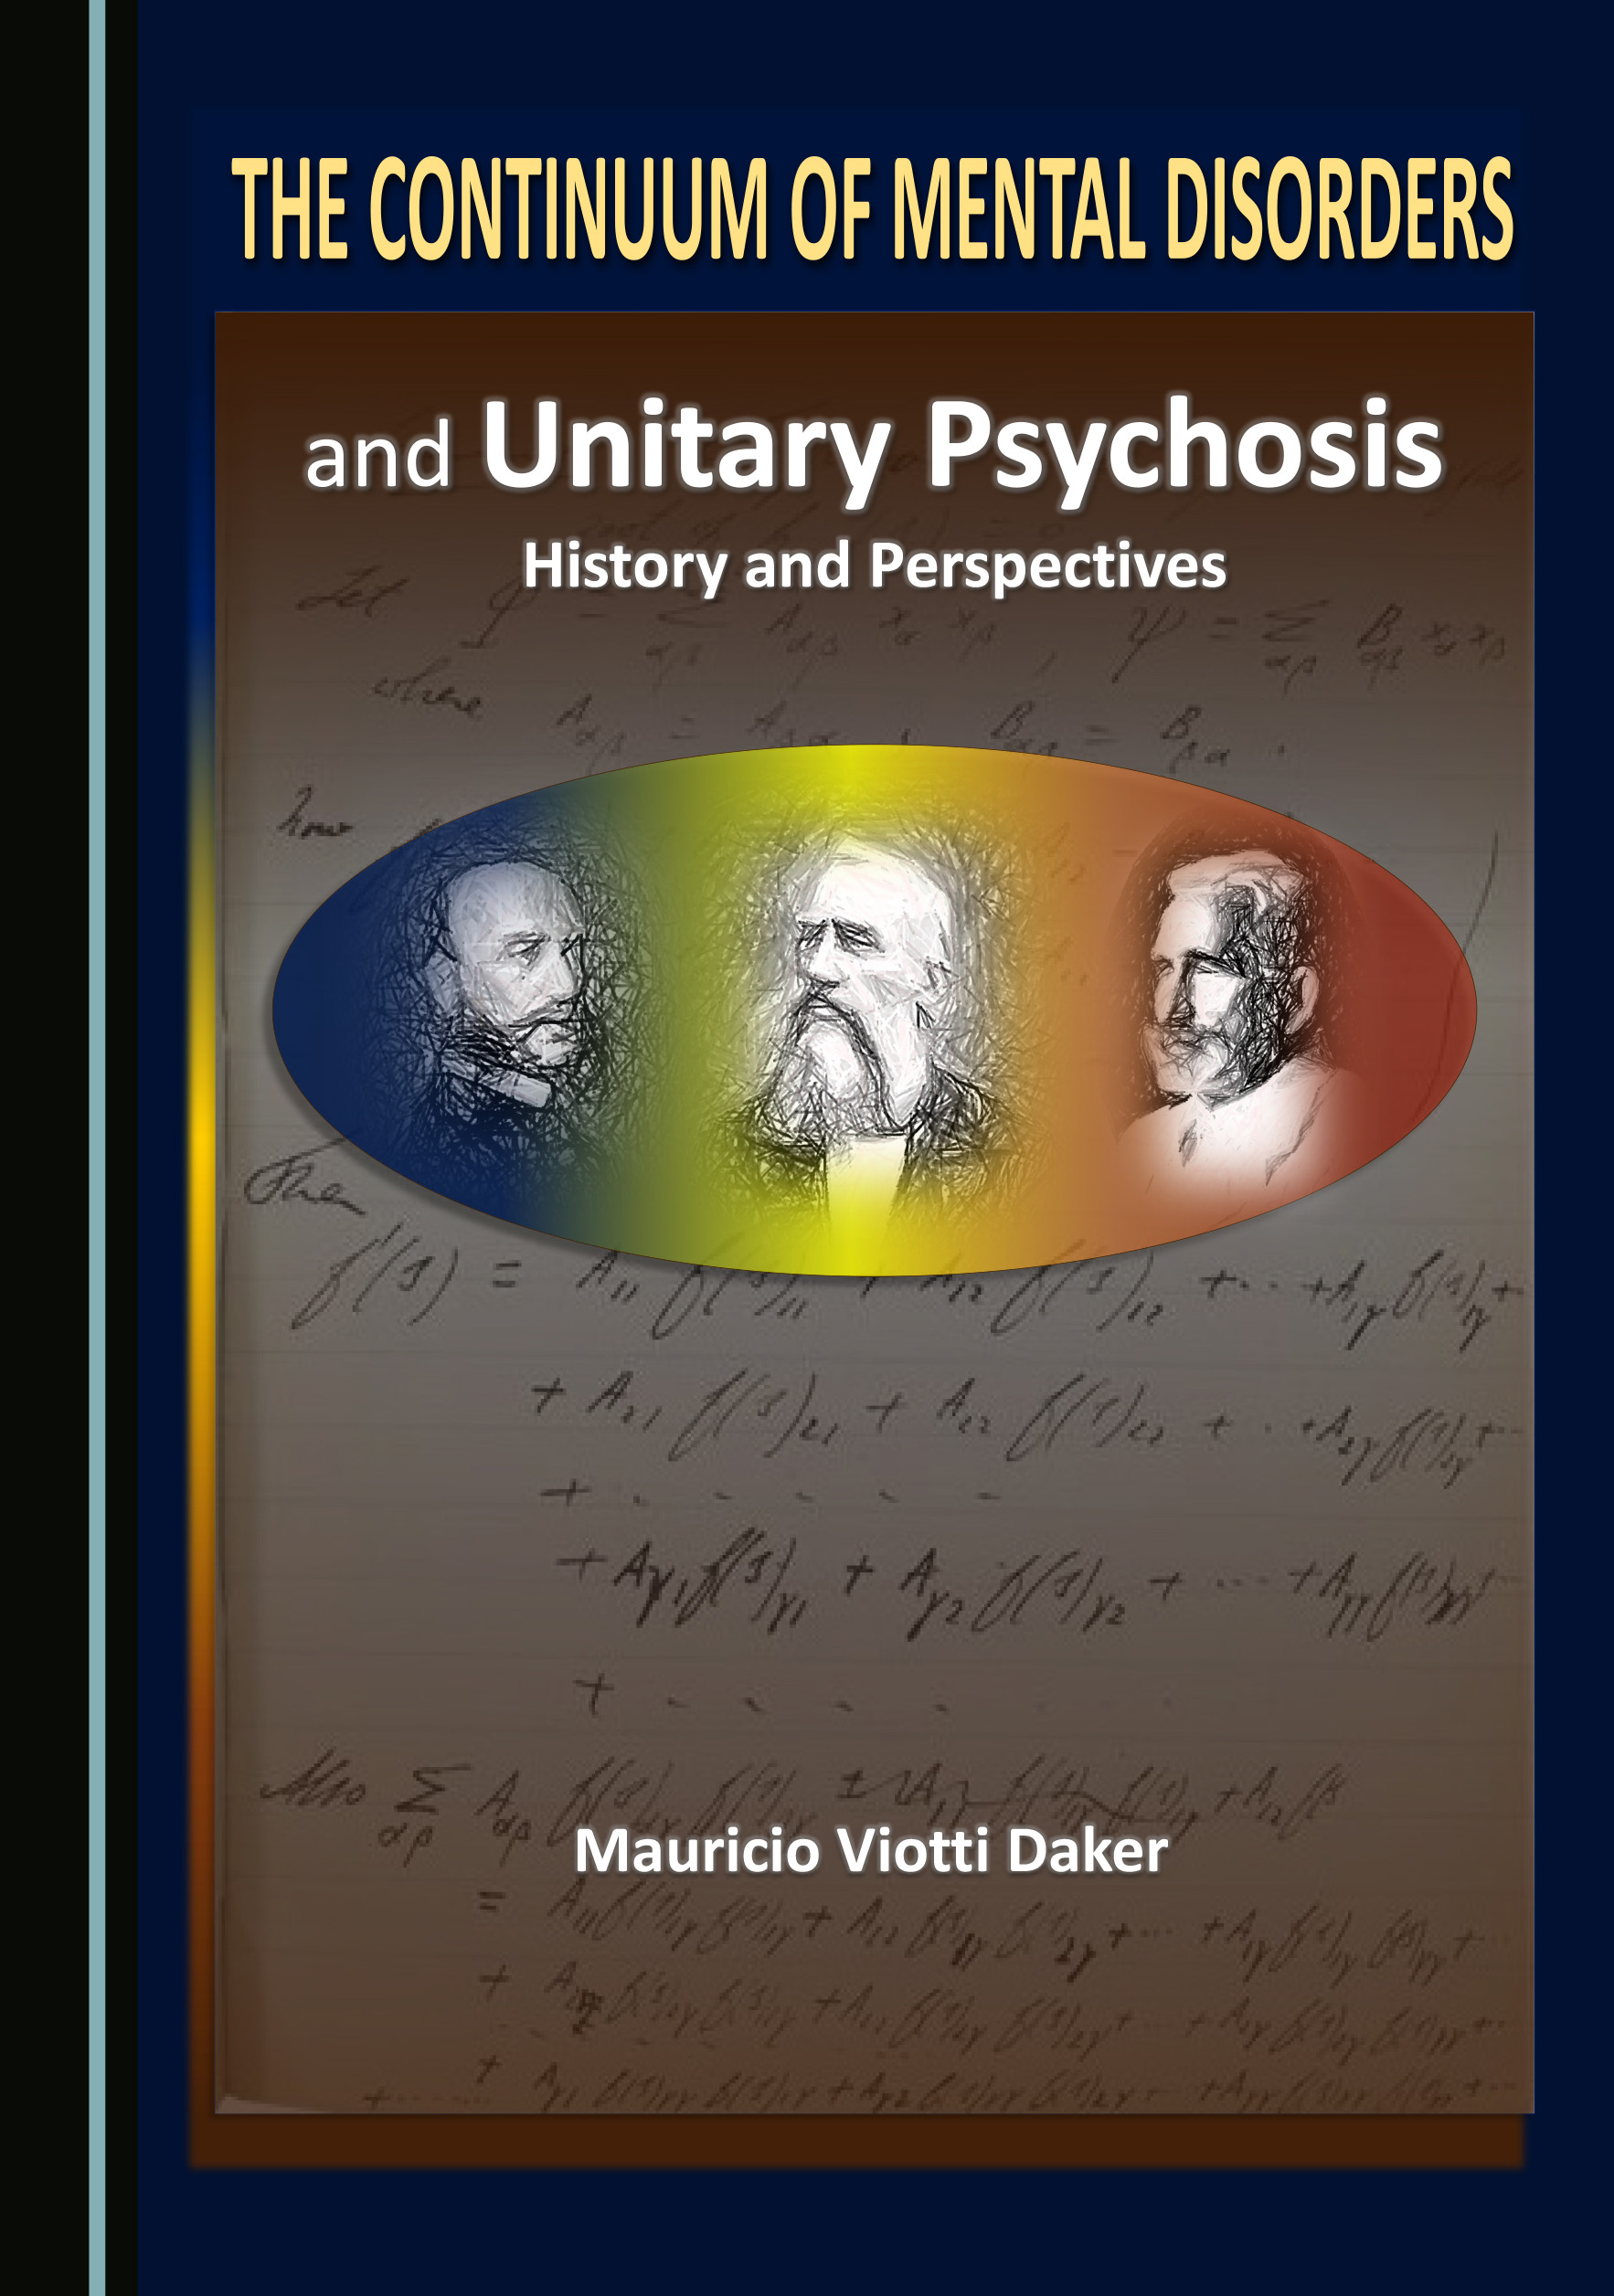 The Continuum of Mental Disorders and Unitary Psychosis: History and Perspectives